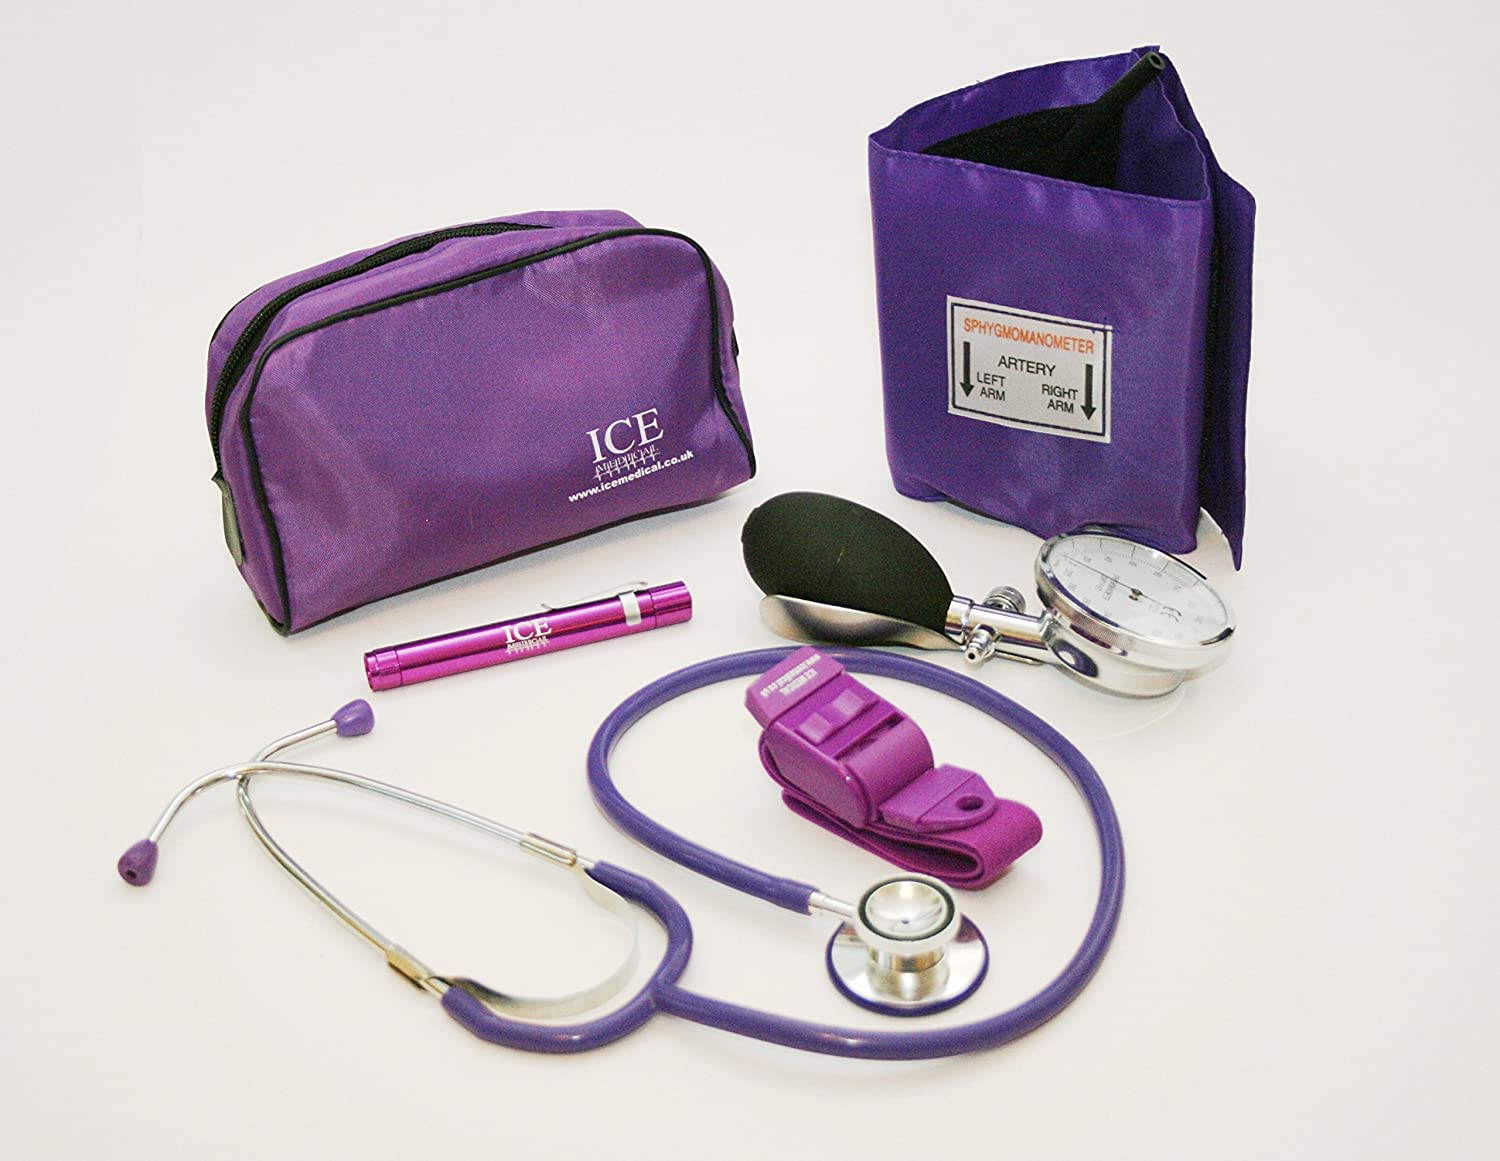 Purple Aneroid Blood Pressure Sphygmomanometer Monitor, Stethoscope, Pen light (Pen Torch) and Tourniquet - GP Set by ICE Medical